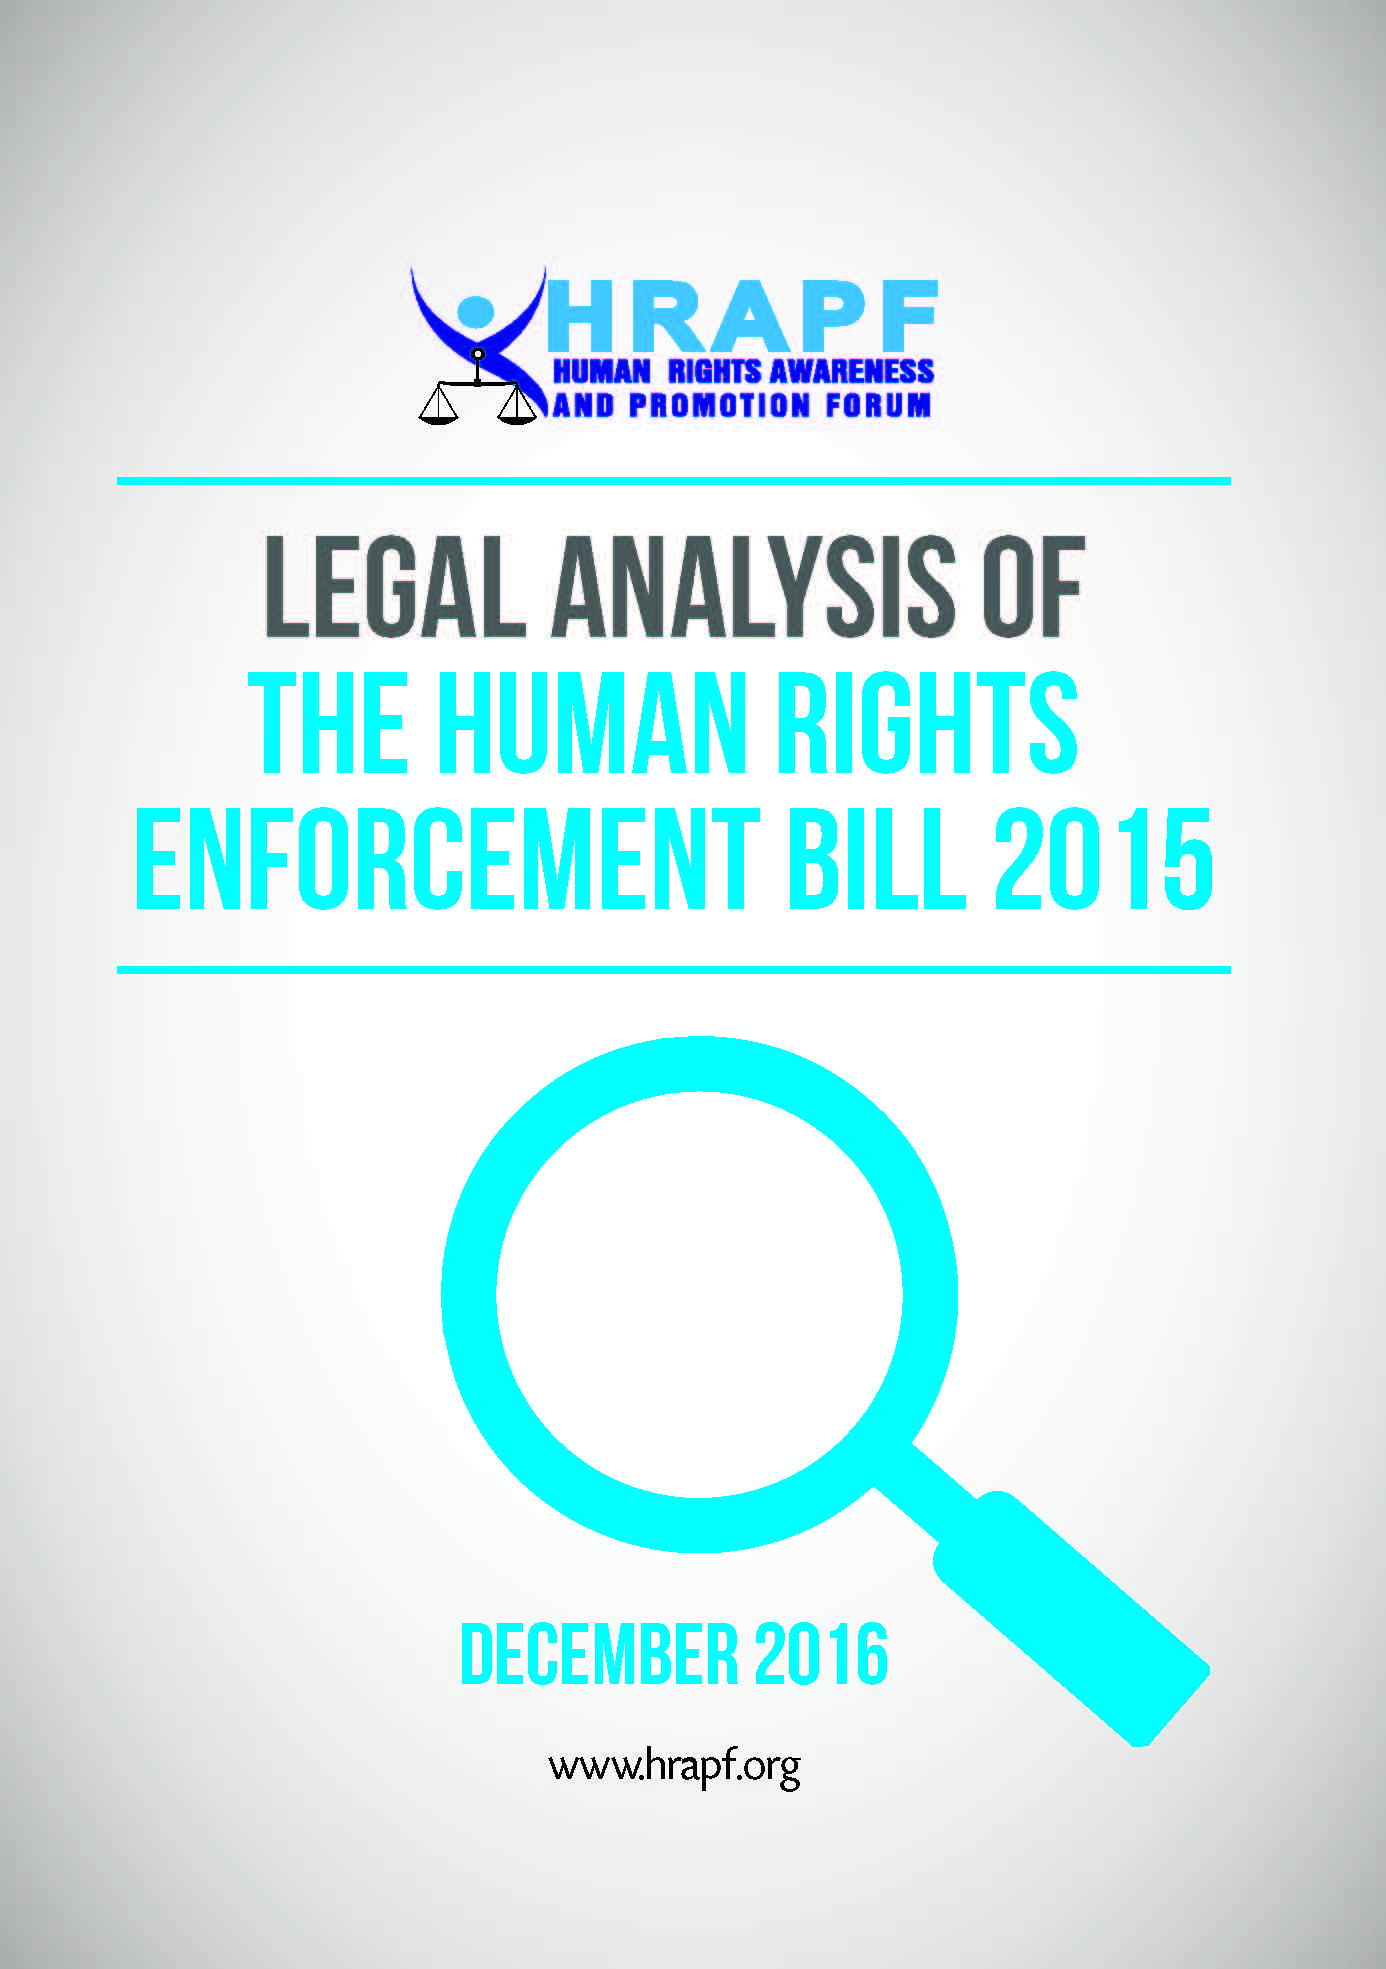 Legal Analysis of the Human Rights Enforcement Bill